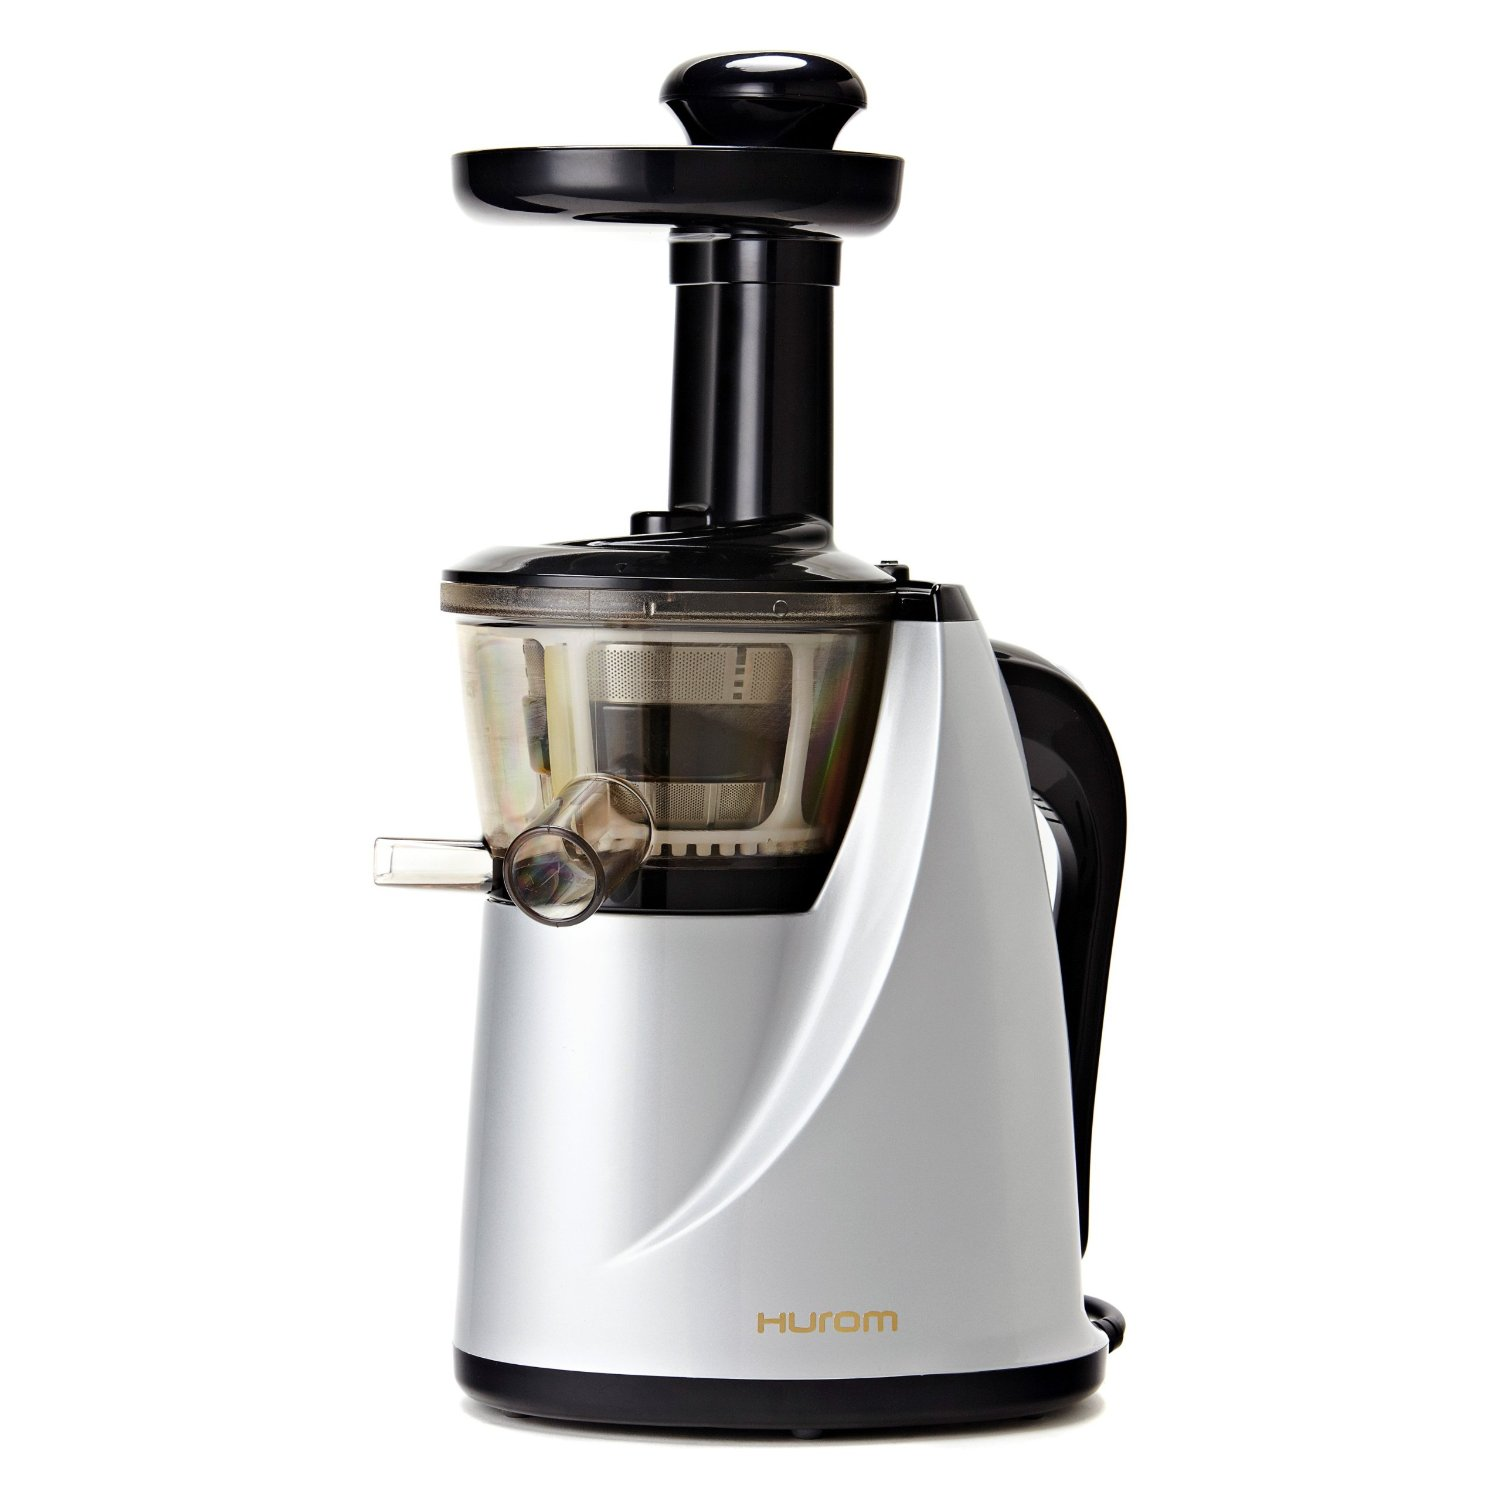 Best Masticating Juicer Reddit : Hurom Juicer Reviews